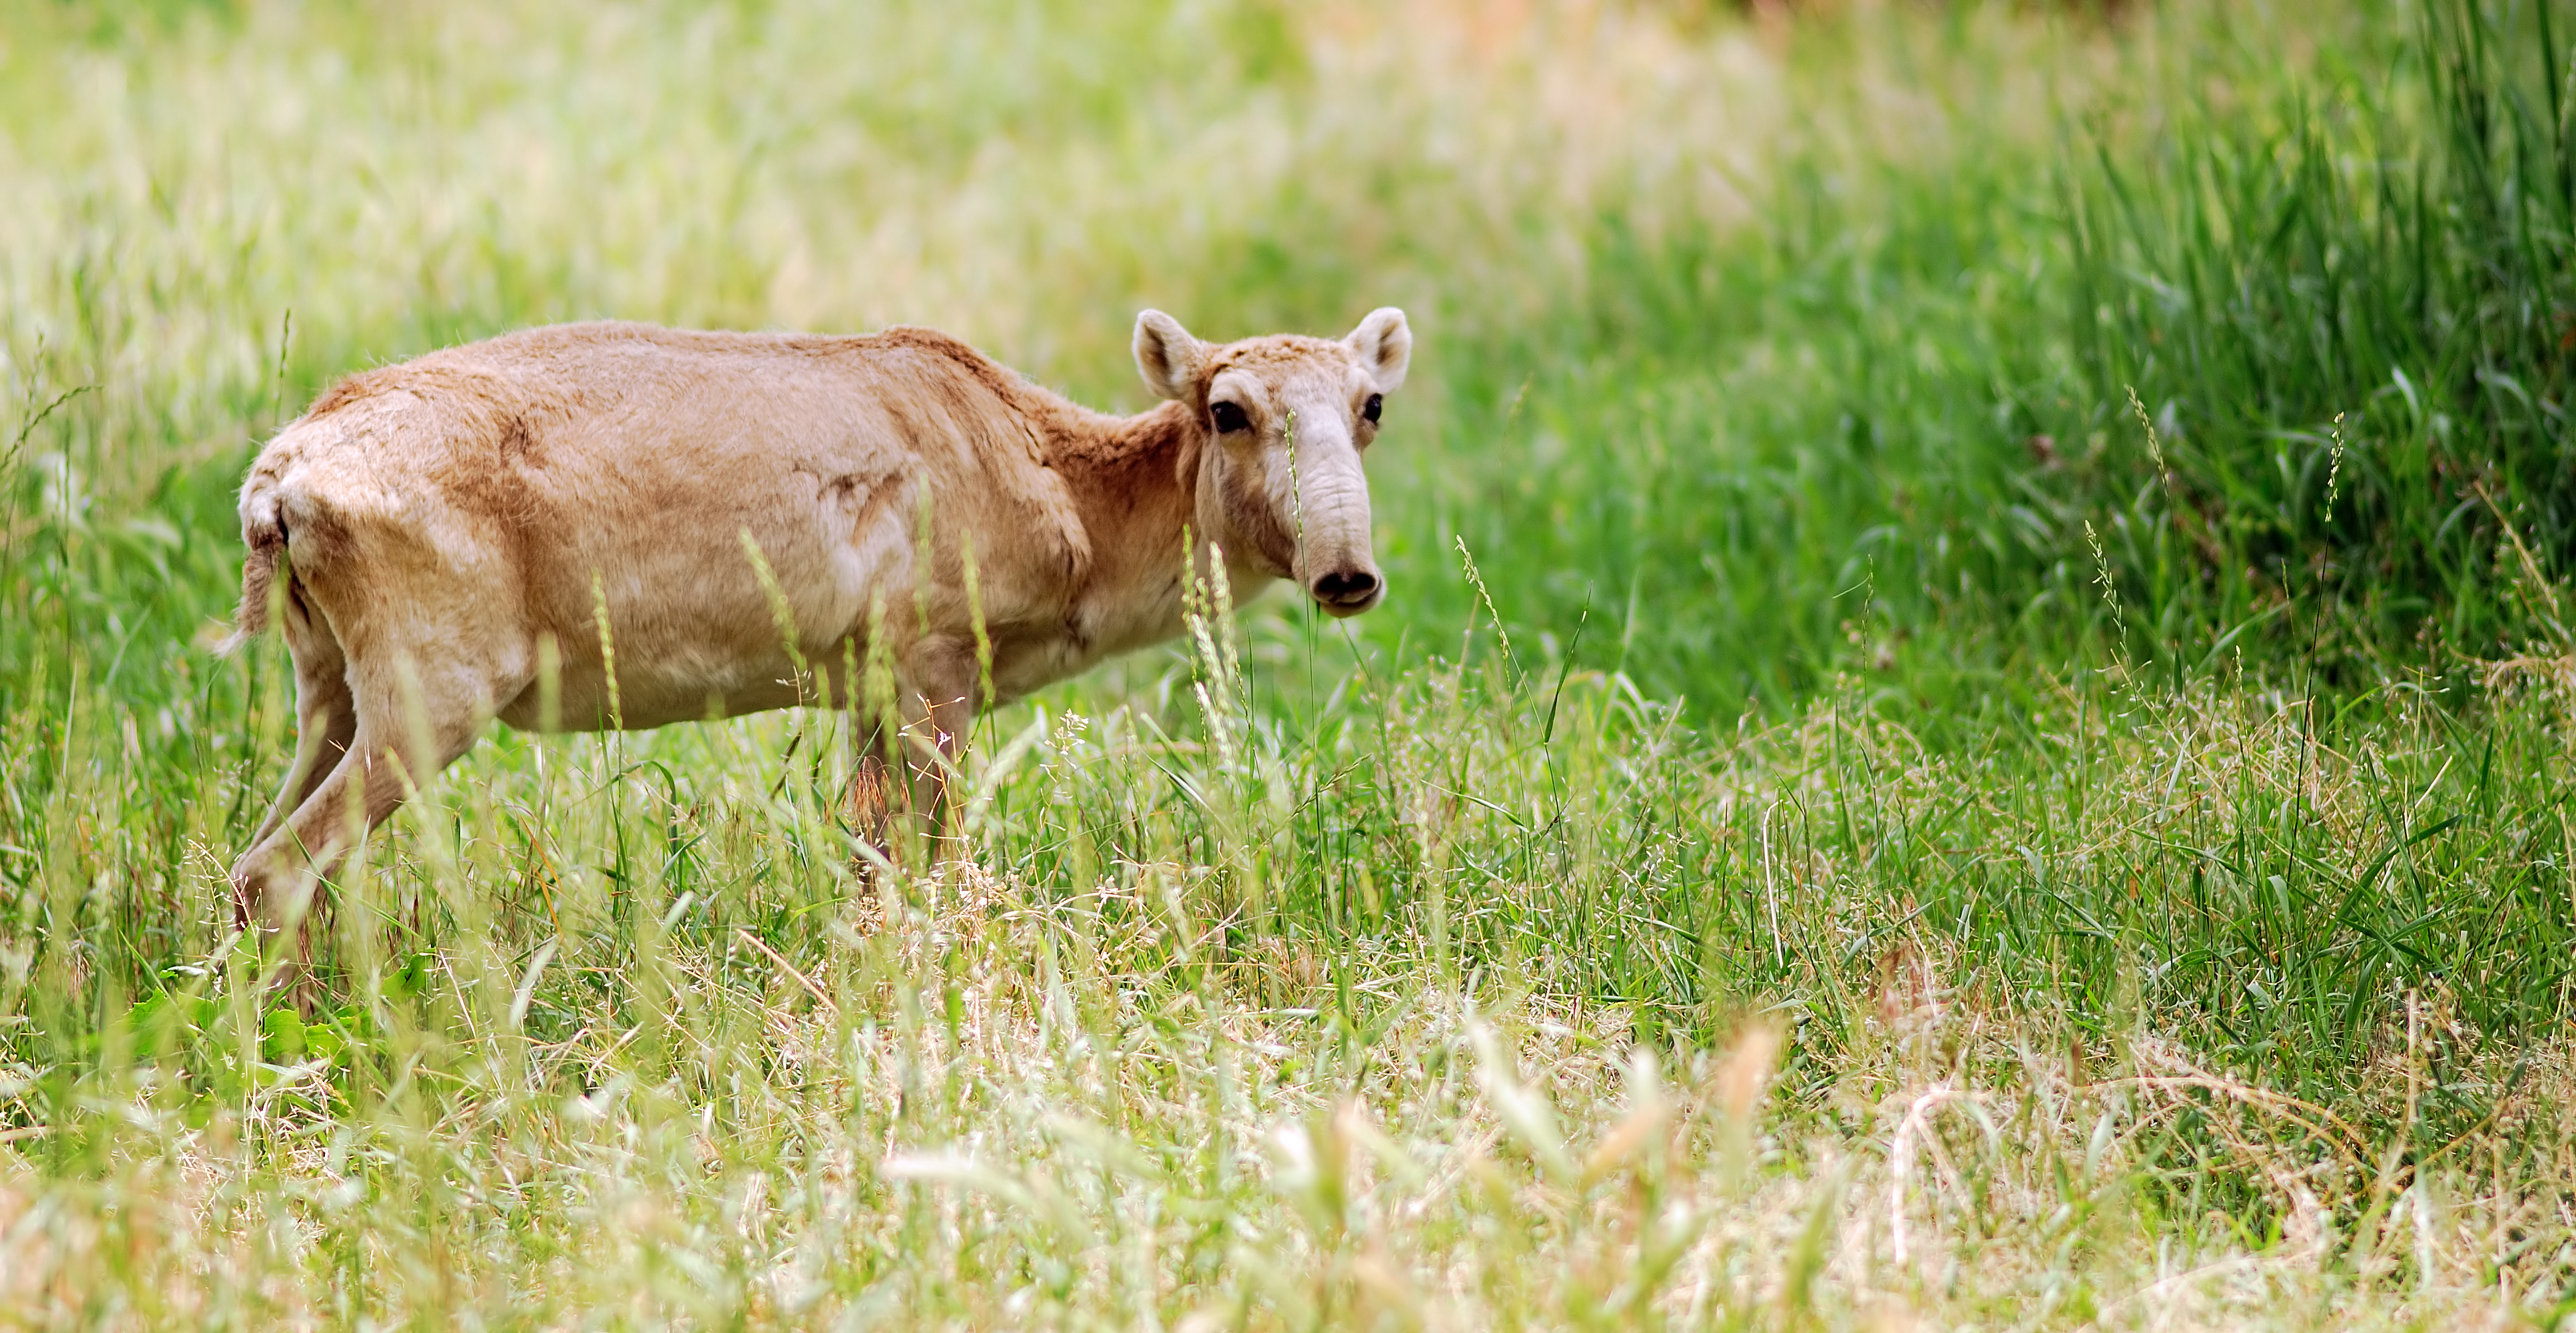 Saiga antelope in long grass